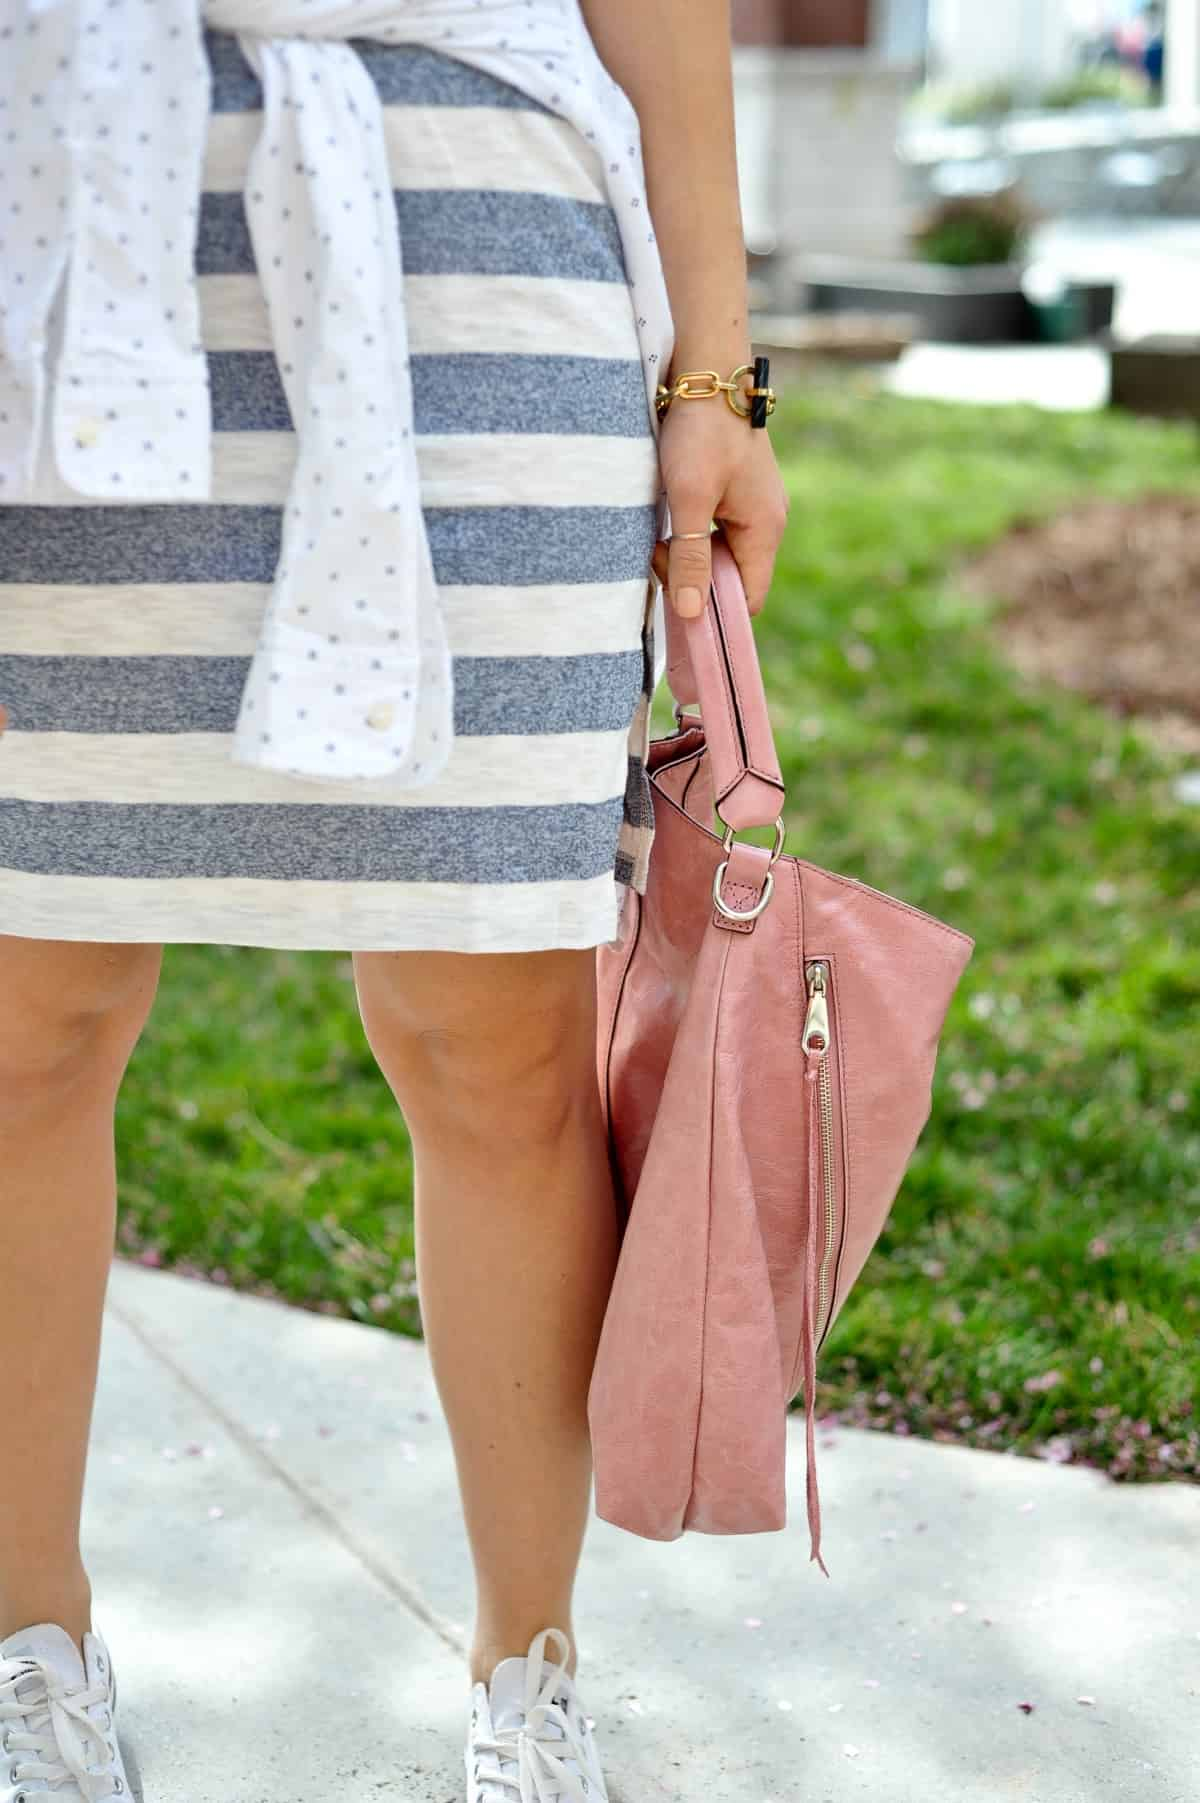 Striped dress and pink leather bag